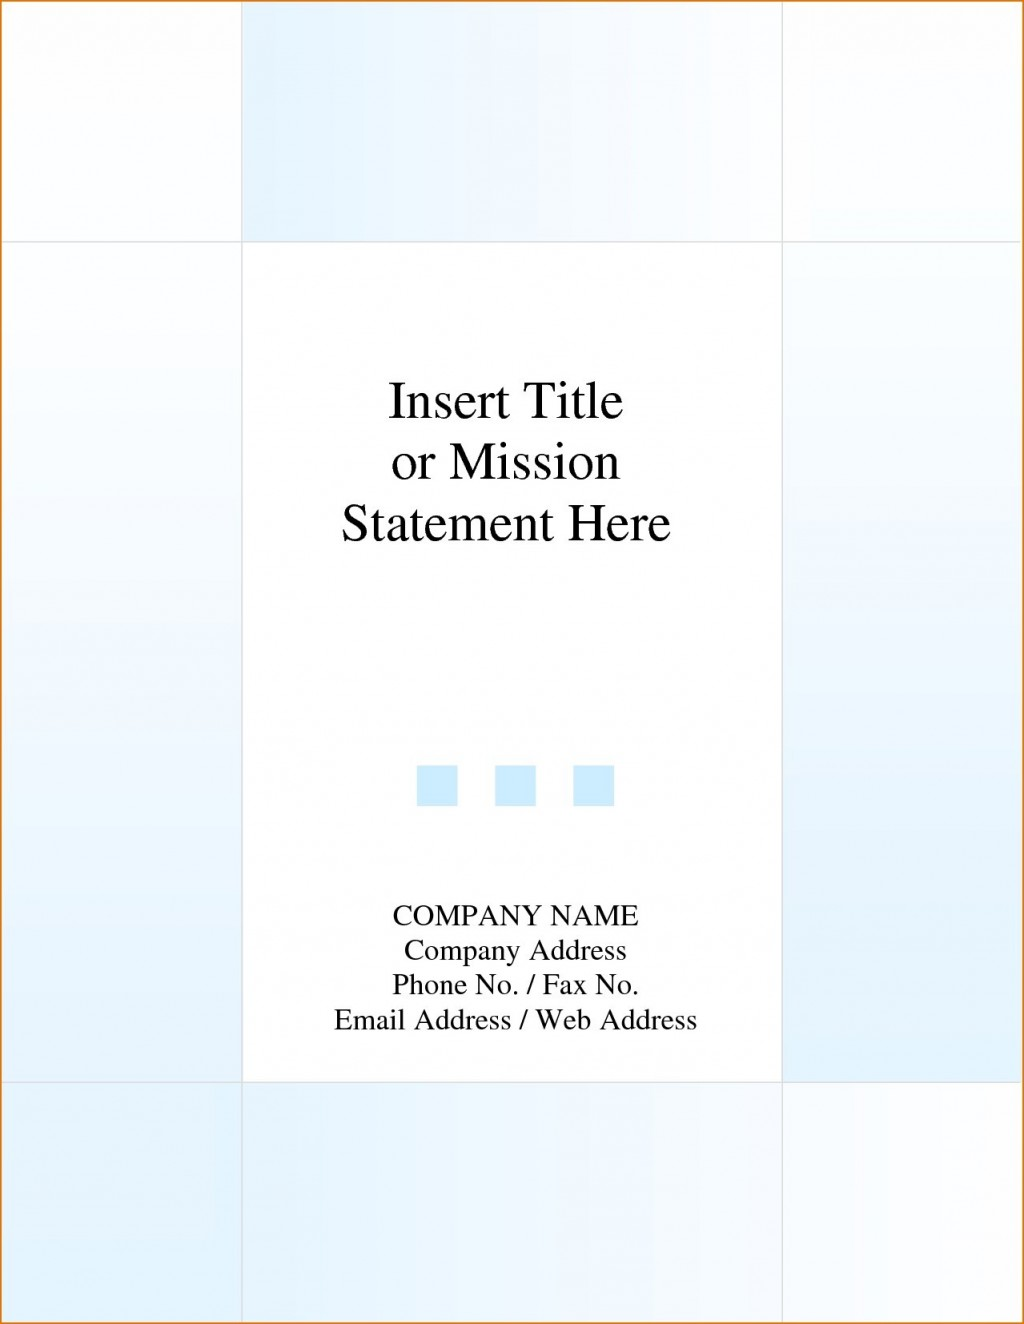 022 Apa Research Paper Cover Page Template Word New Inspirationa Impressive Sample Title Format Large